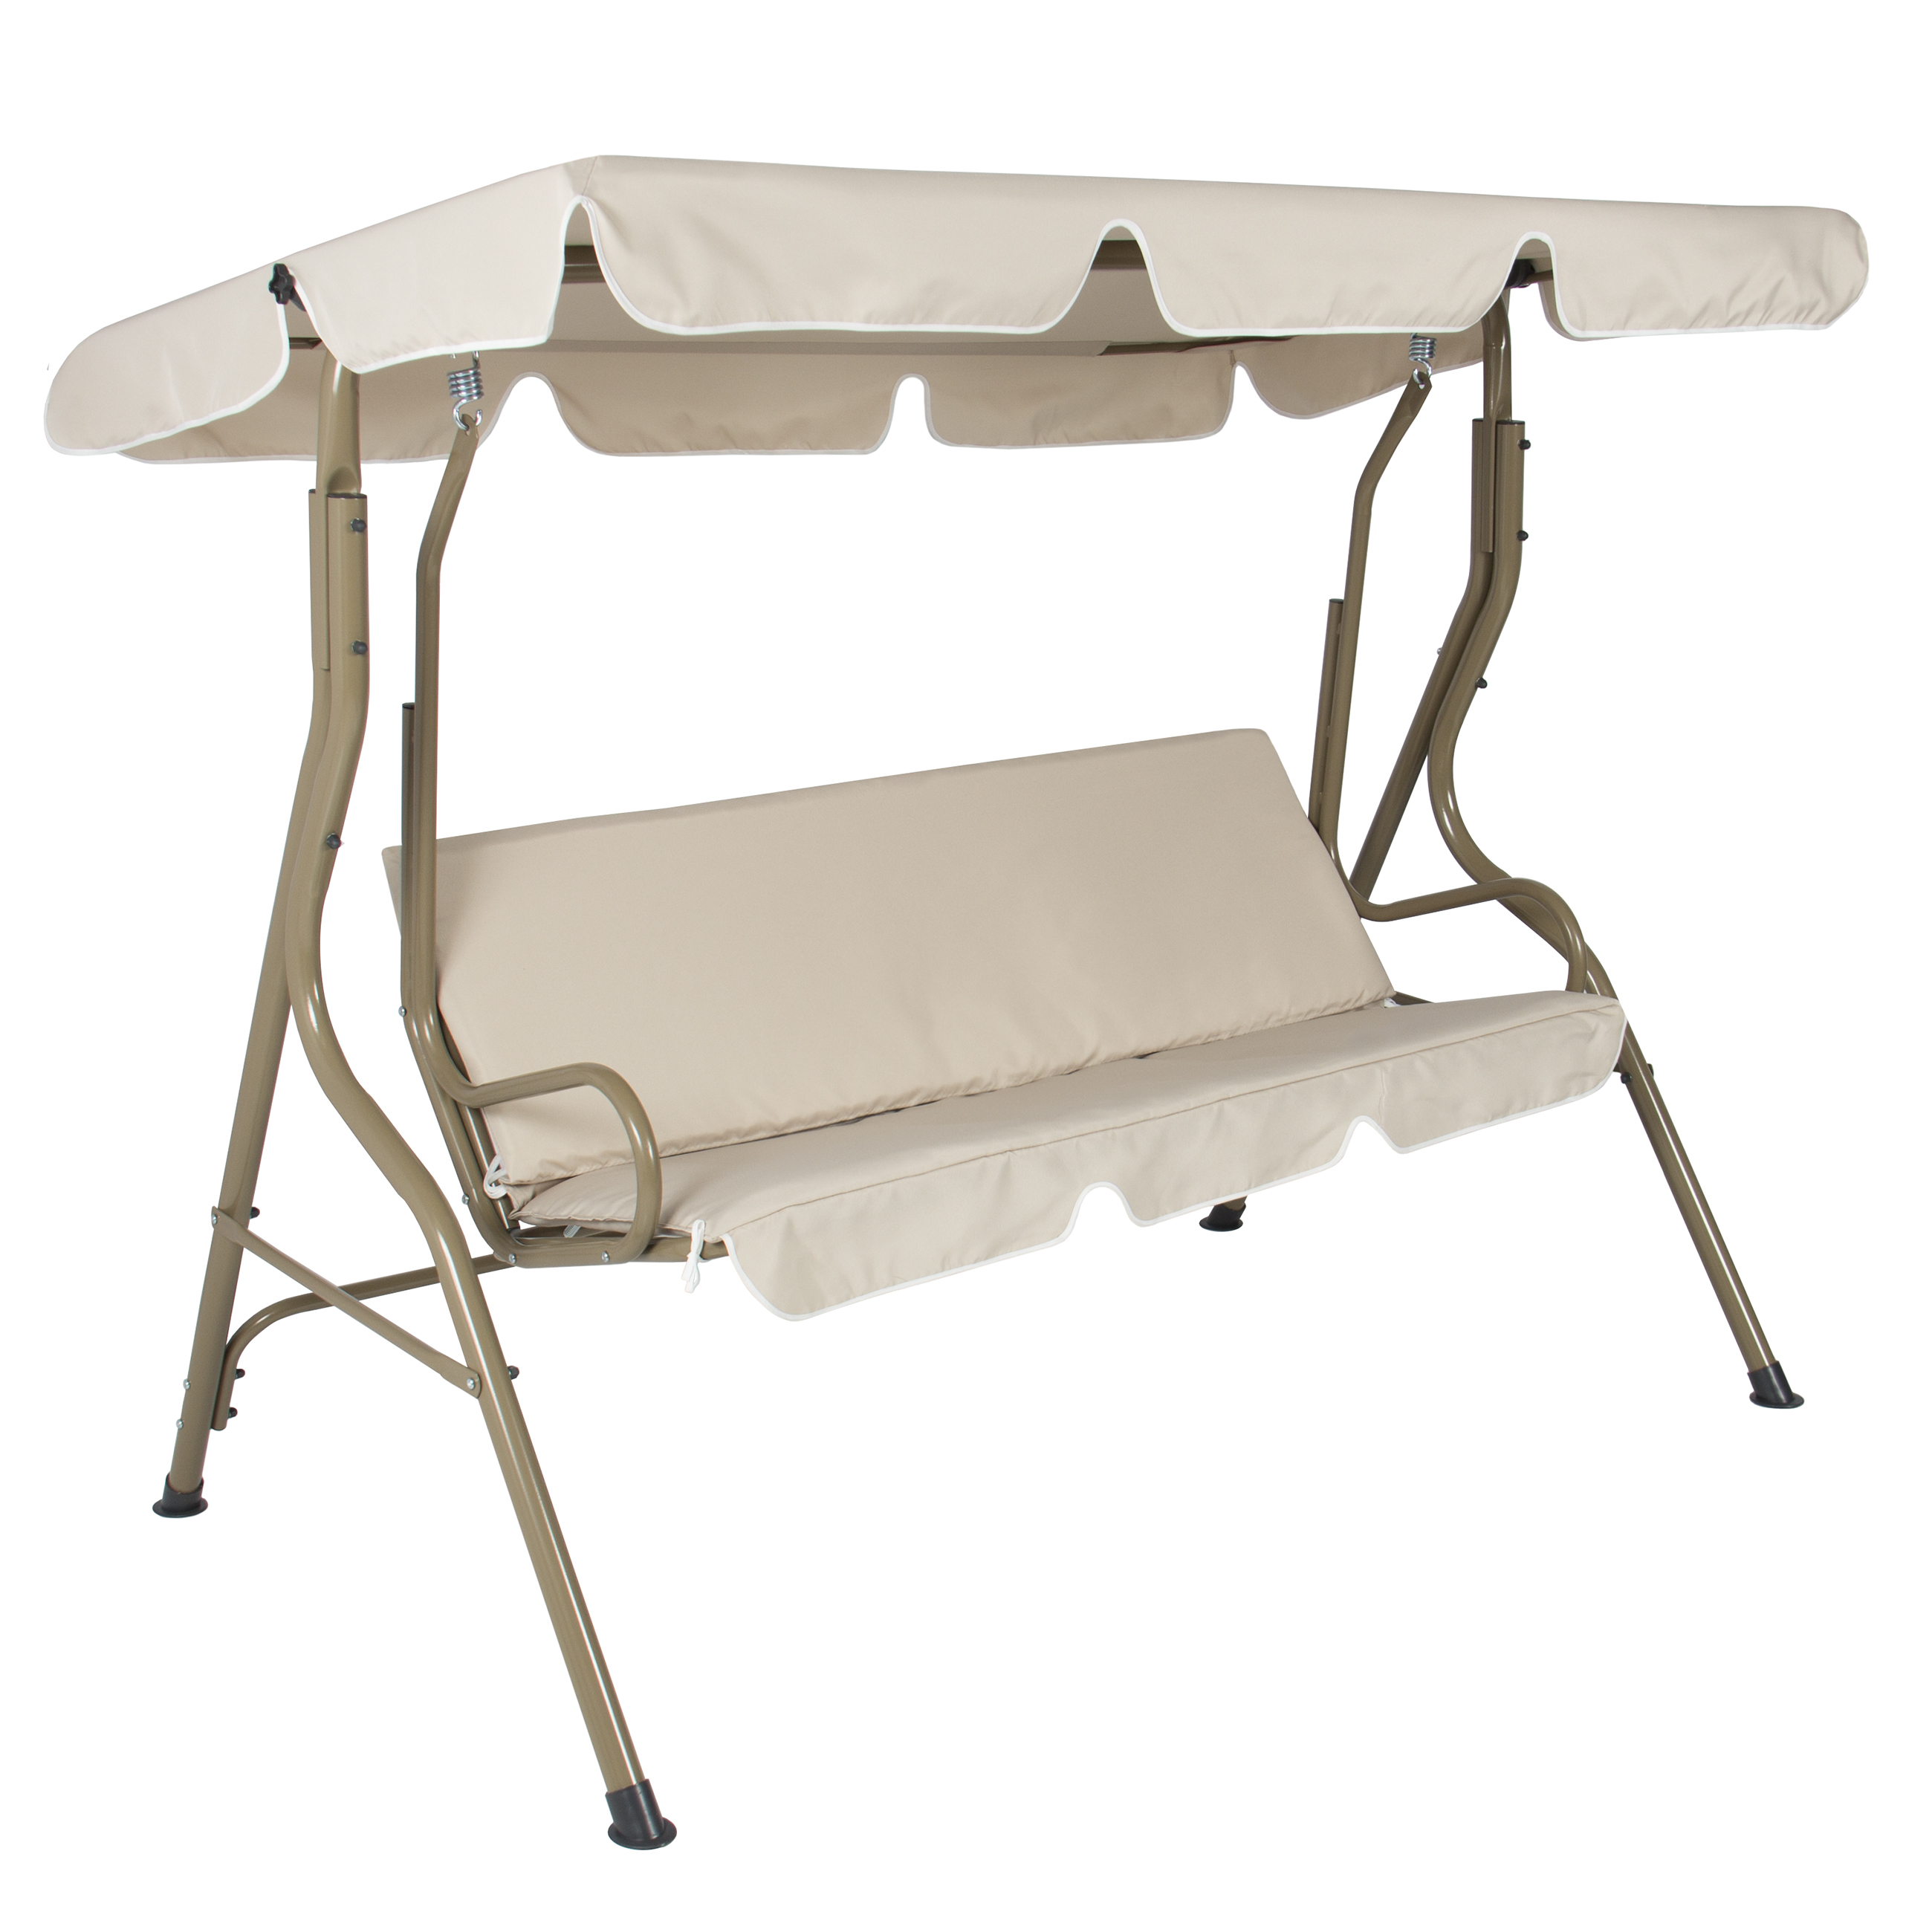 BCP 2 Person Outdoor Lg Convertible Canopy Swing Glider W/ Removable  Cushions   Walmart.com